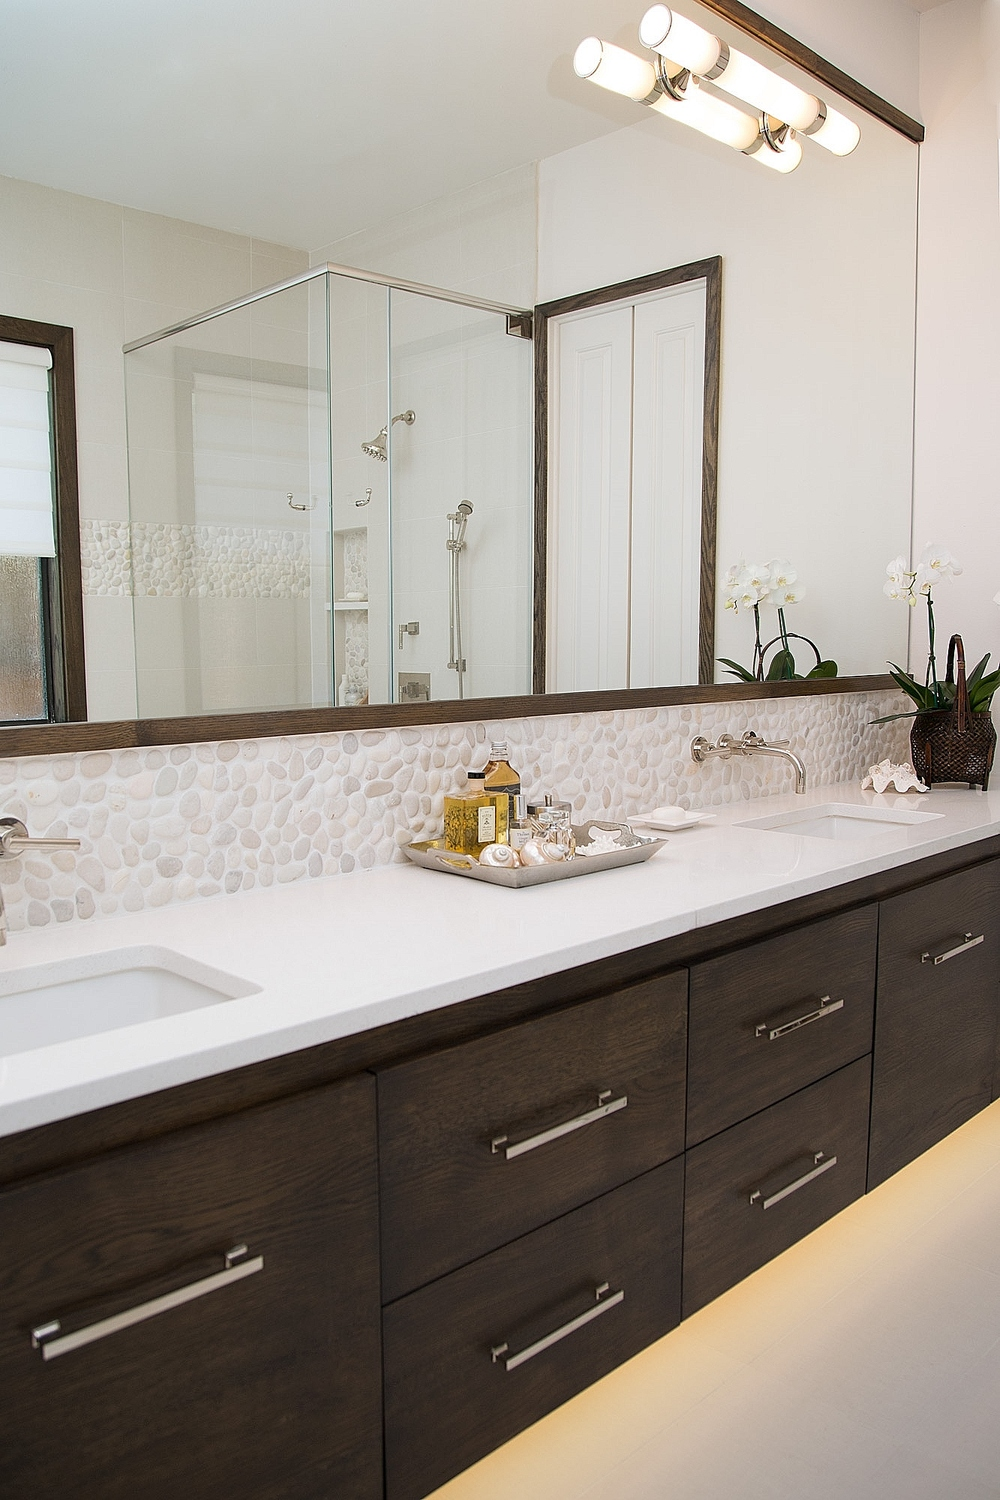 Master Bath Remodel - floating cabinetry, pebble tile backsplash, wall mount faucets